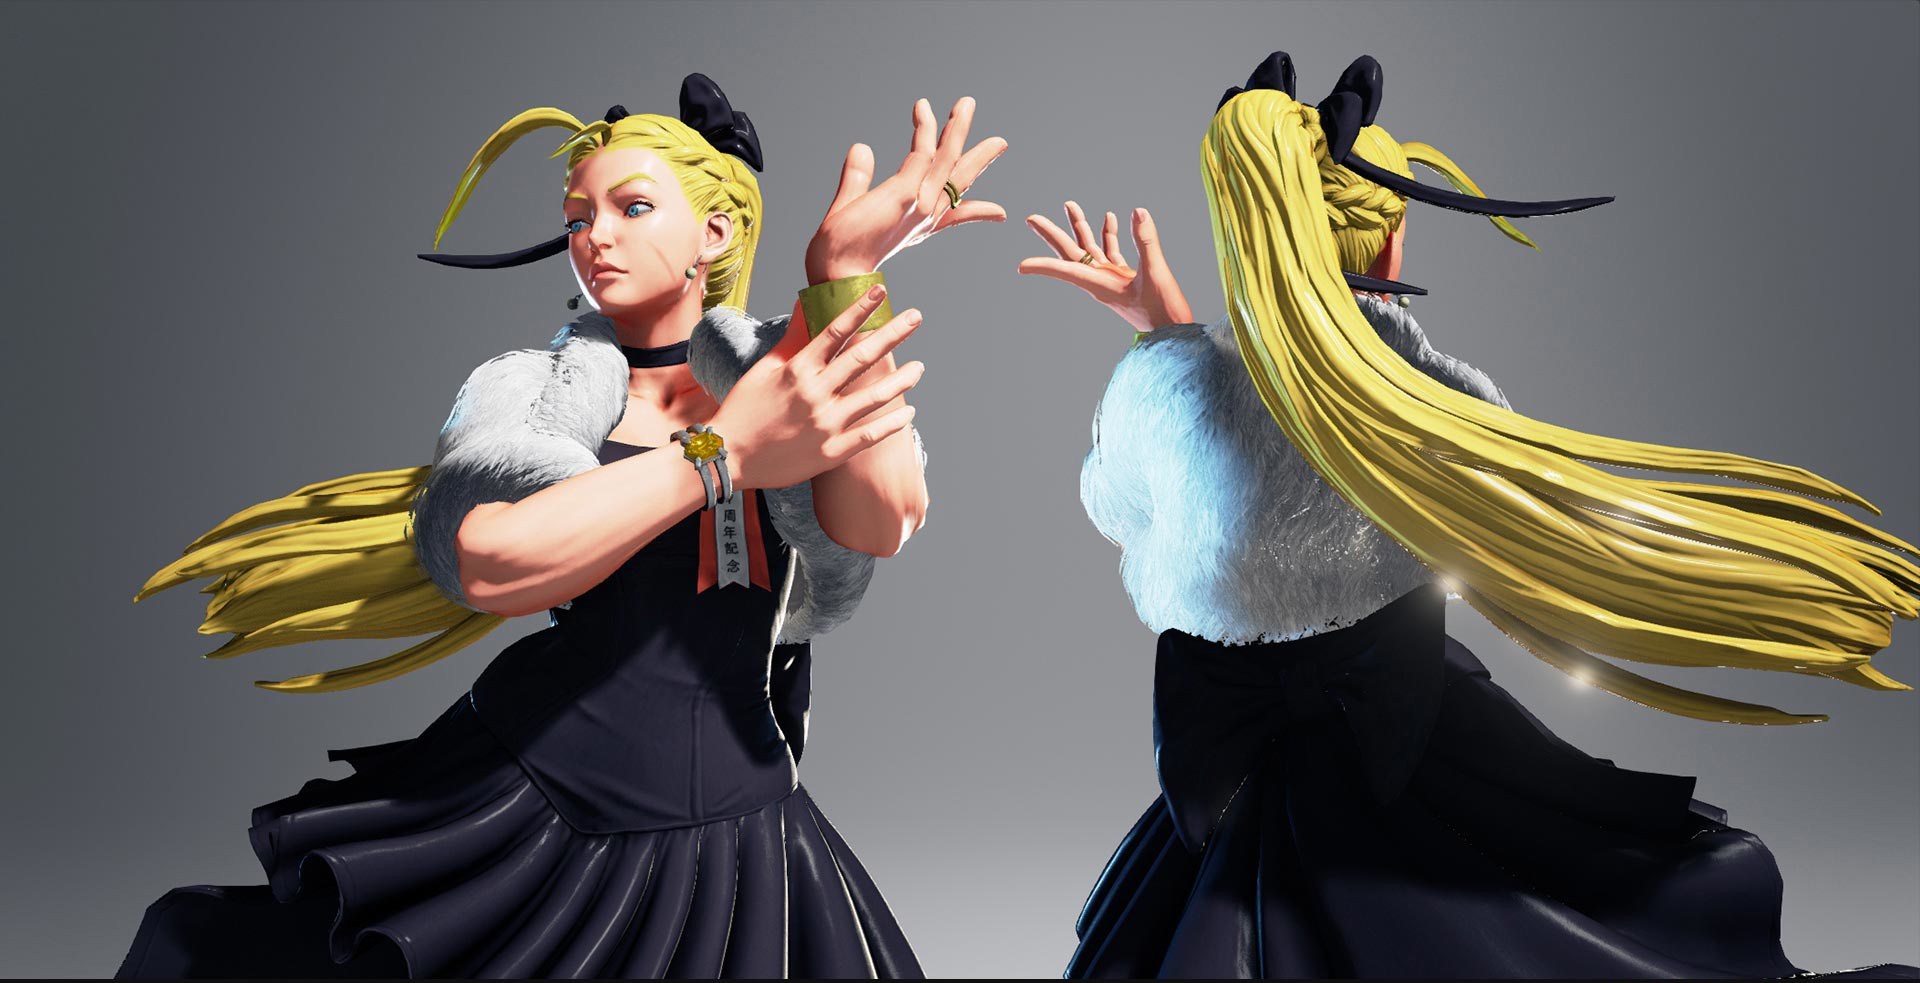 Street Fighter V Arcade Edition - Character Cammy Anniversary Costume - Capcom